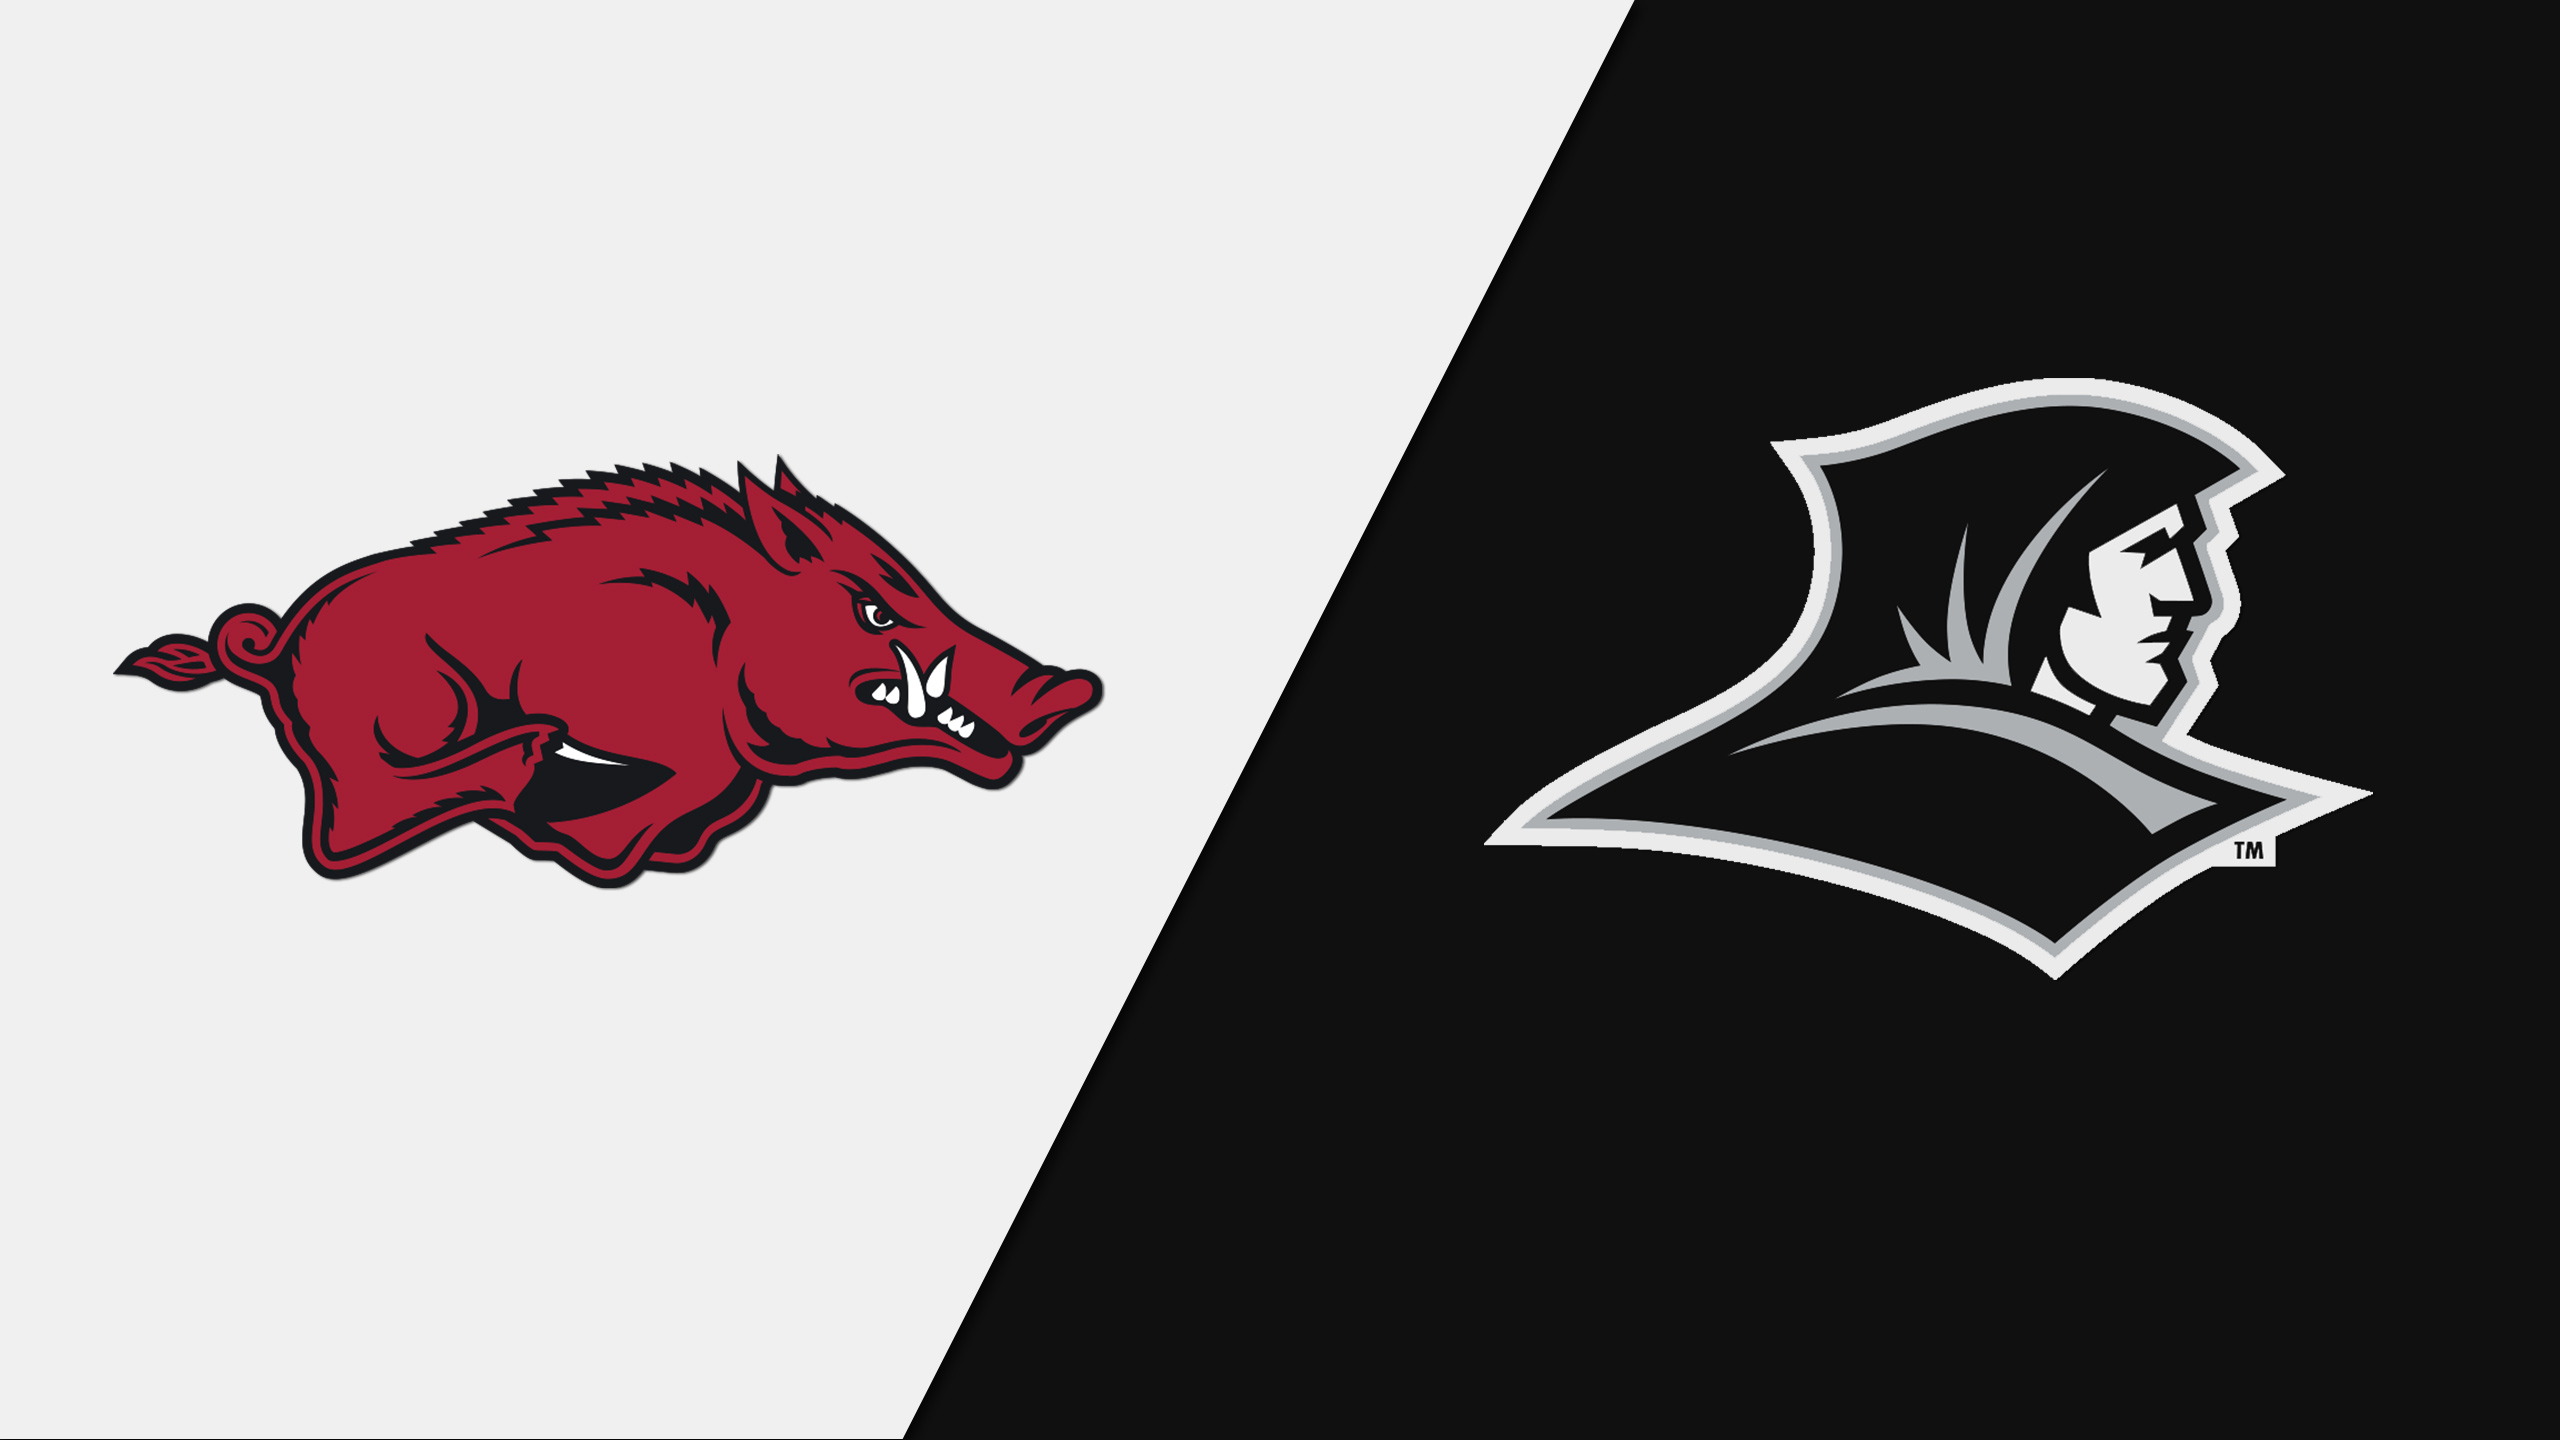 #5 Arkansas vs. #4 Providence (First Round) (NIT)